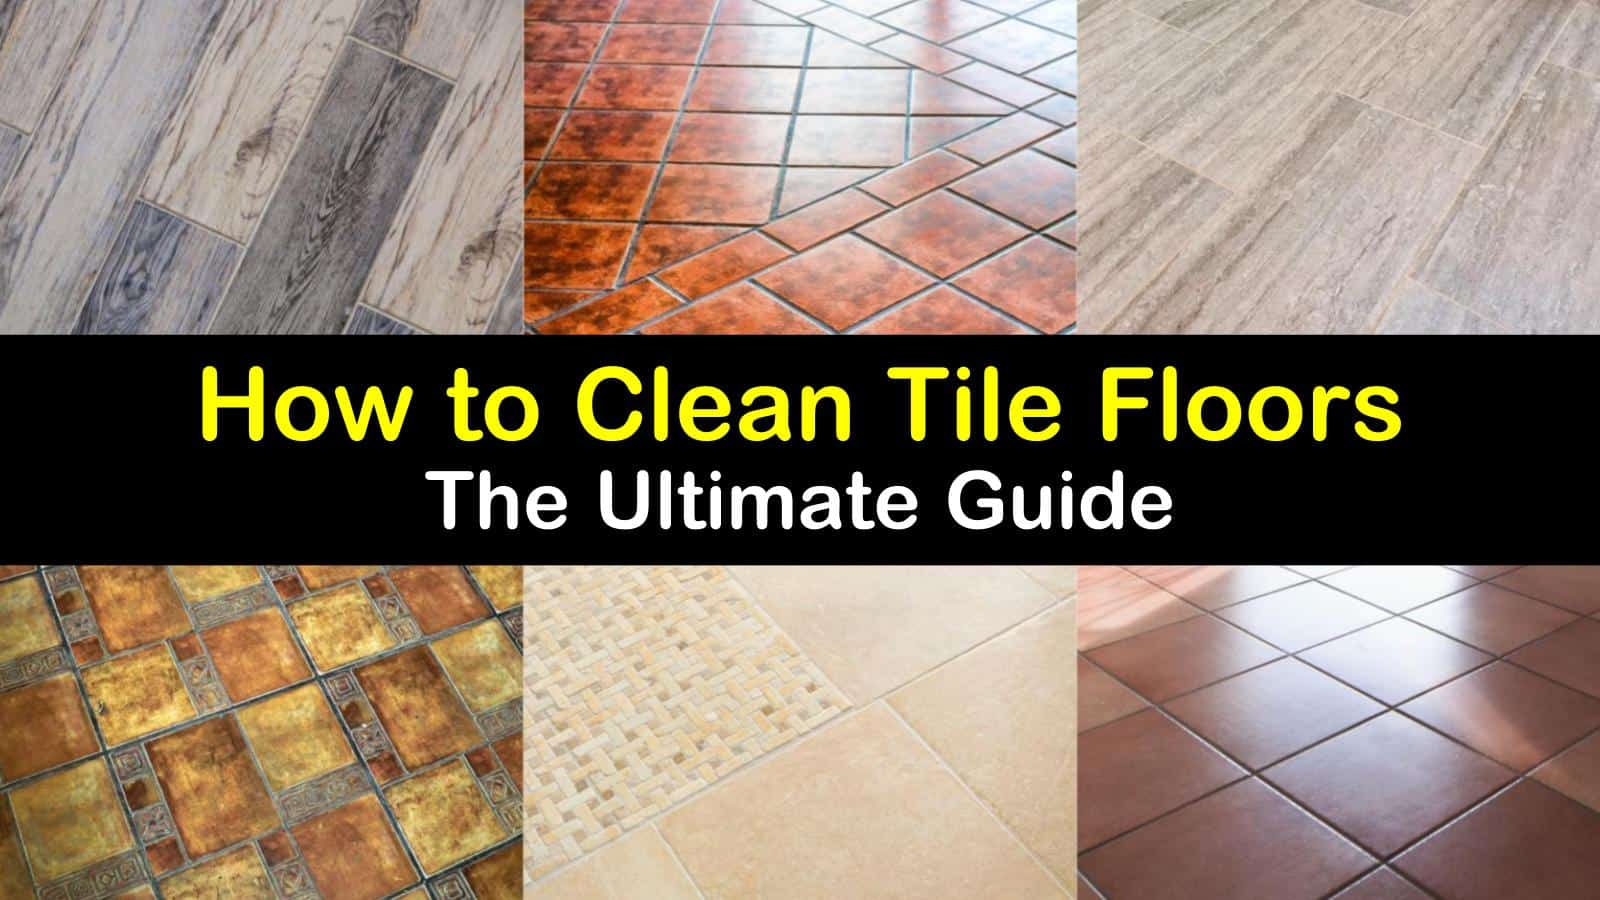 How To Clean Tile Floors The Ultimate Guide